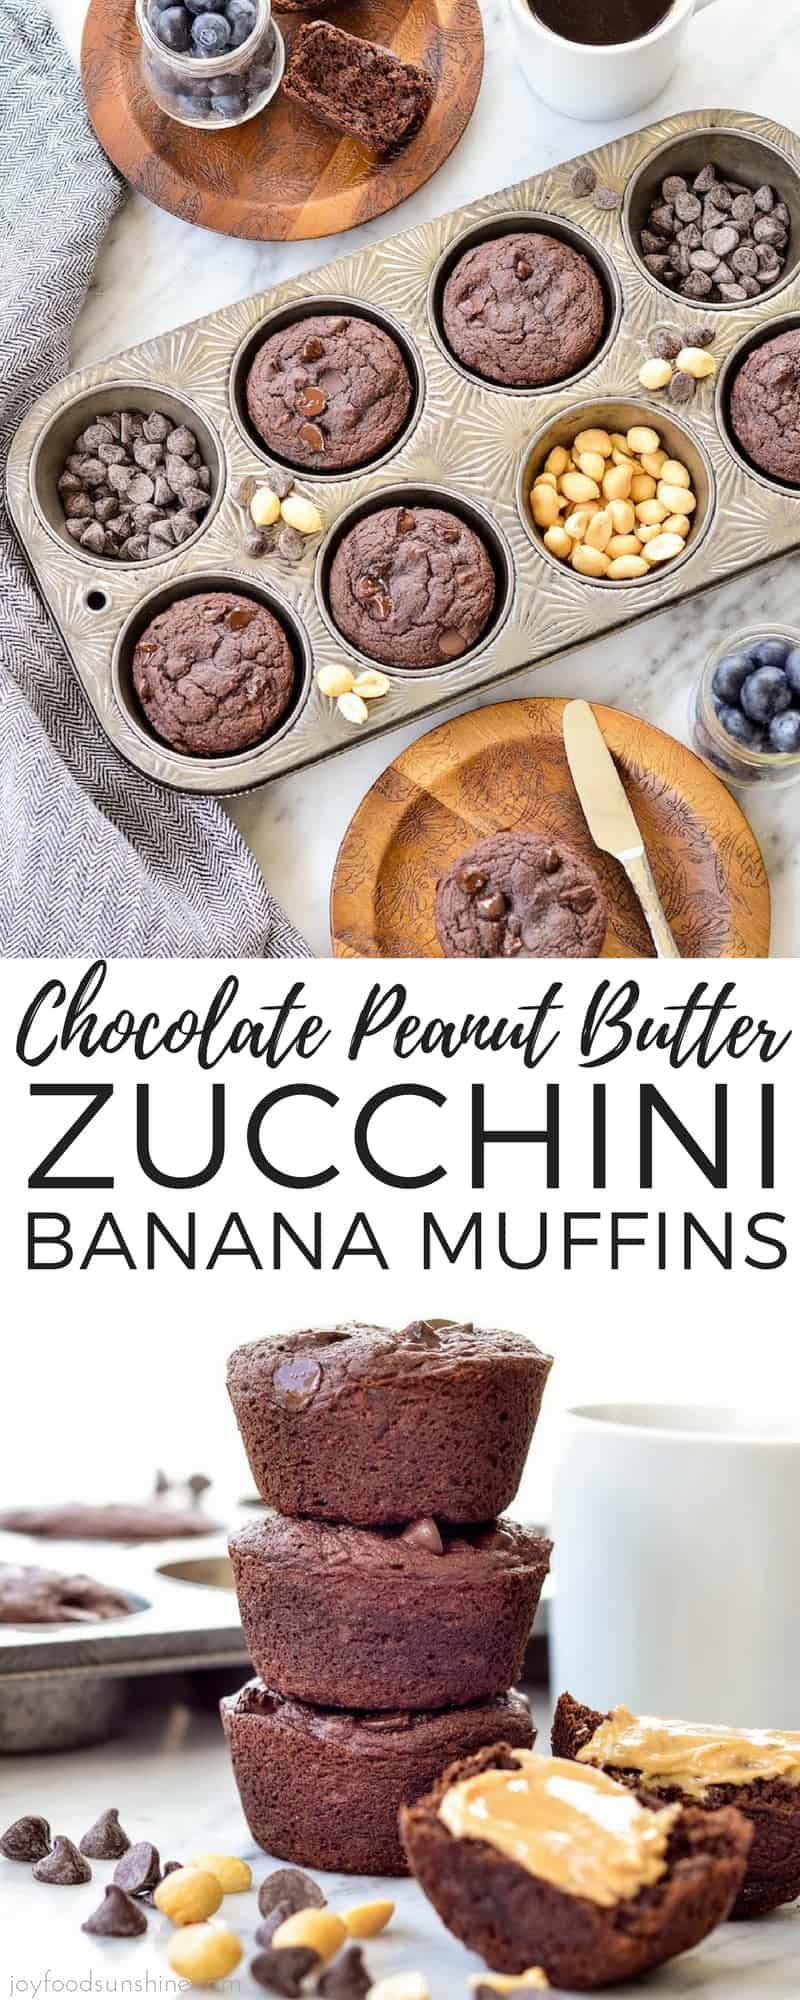 Peanut Butter Chocolate Zucchini Muffins are the perfect breakfast! This recipe is grain-free, gluten-free, dairy-free has no refined sugar and is paleo-friendly! Plus they are loaded with protein, sneaky veggies and are freezer-friendly! Make them today! #muffins #breakfast #chocolate #peanutbutter #zucchinimuffins #bananamuffins #grainfree #glutenfree #dairyfree #refinedsugarfree #zucchini #banana